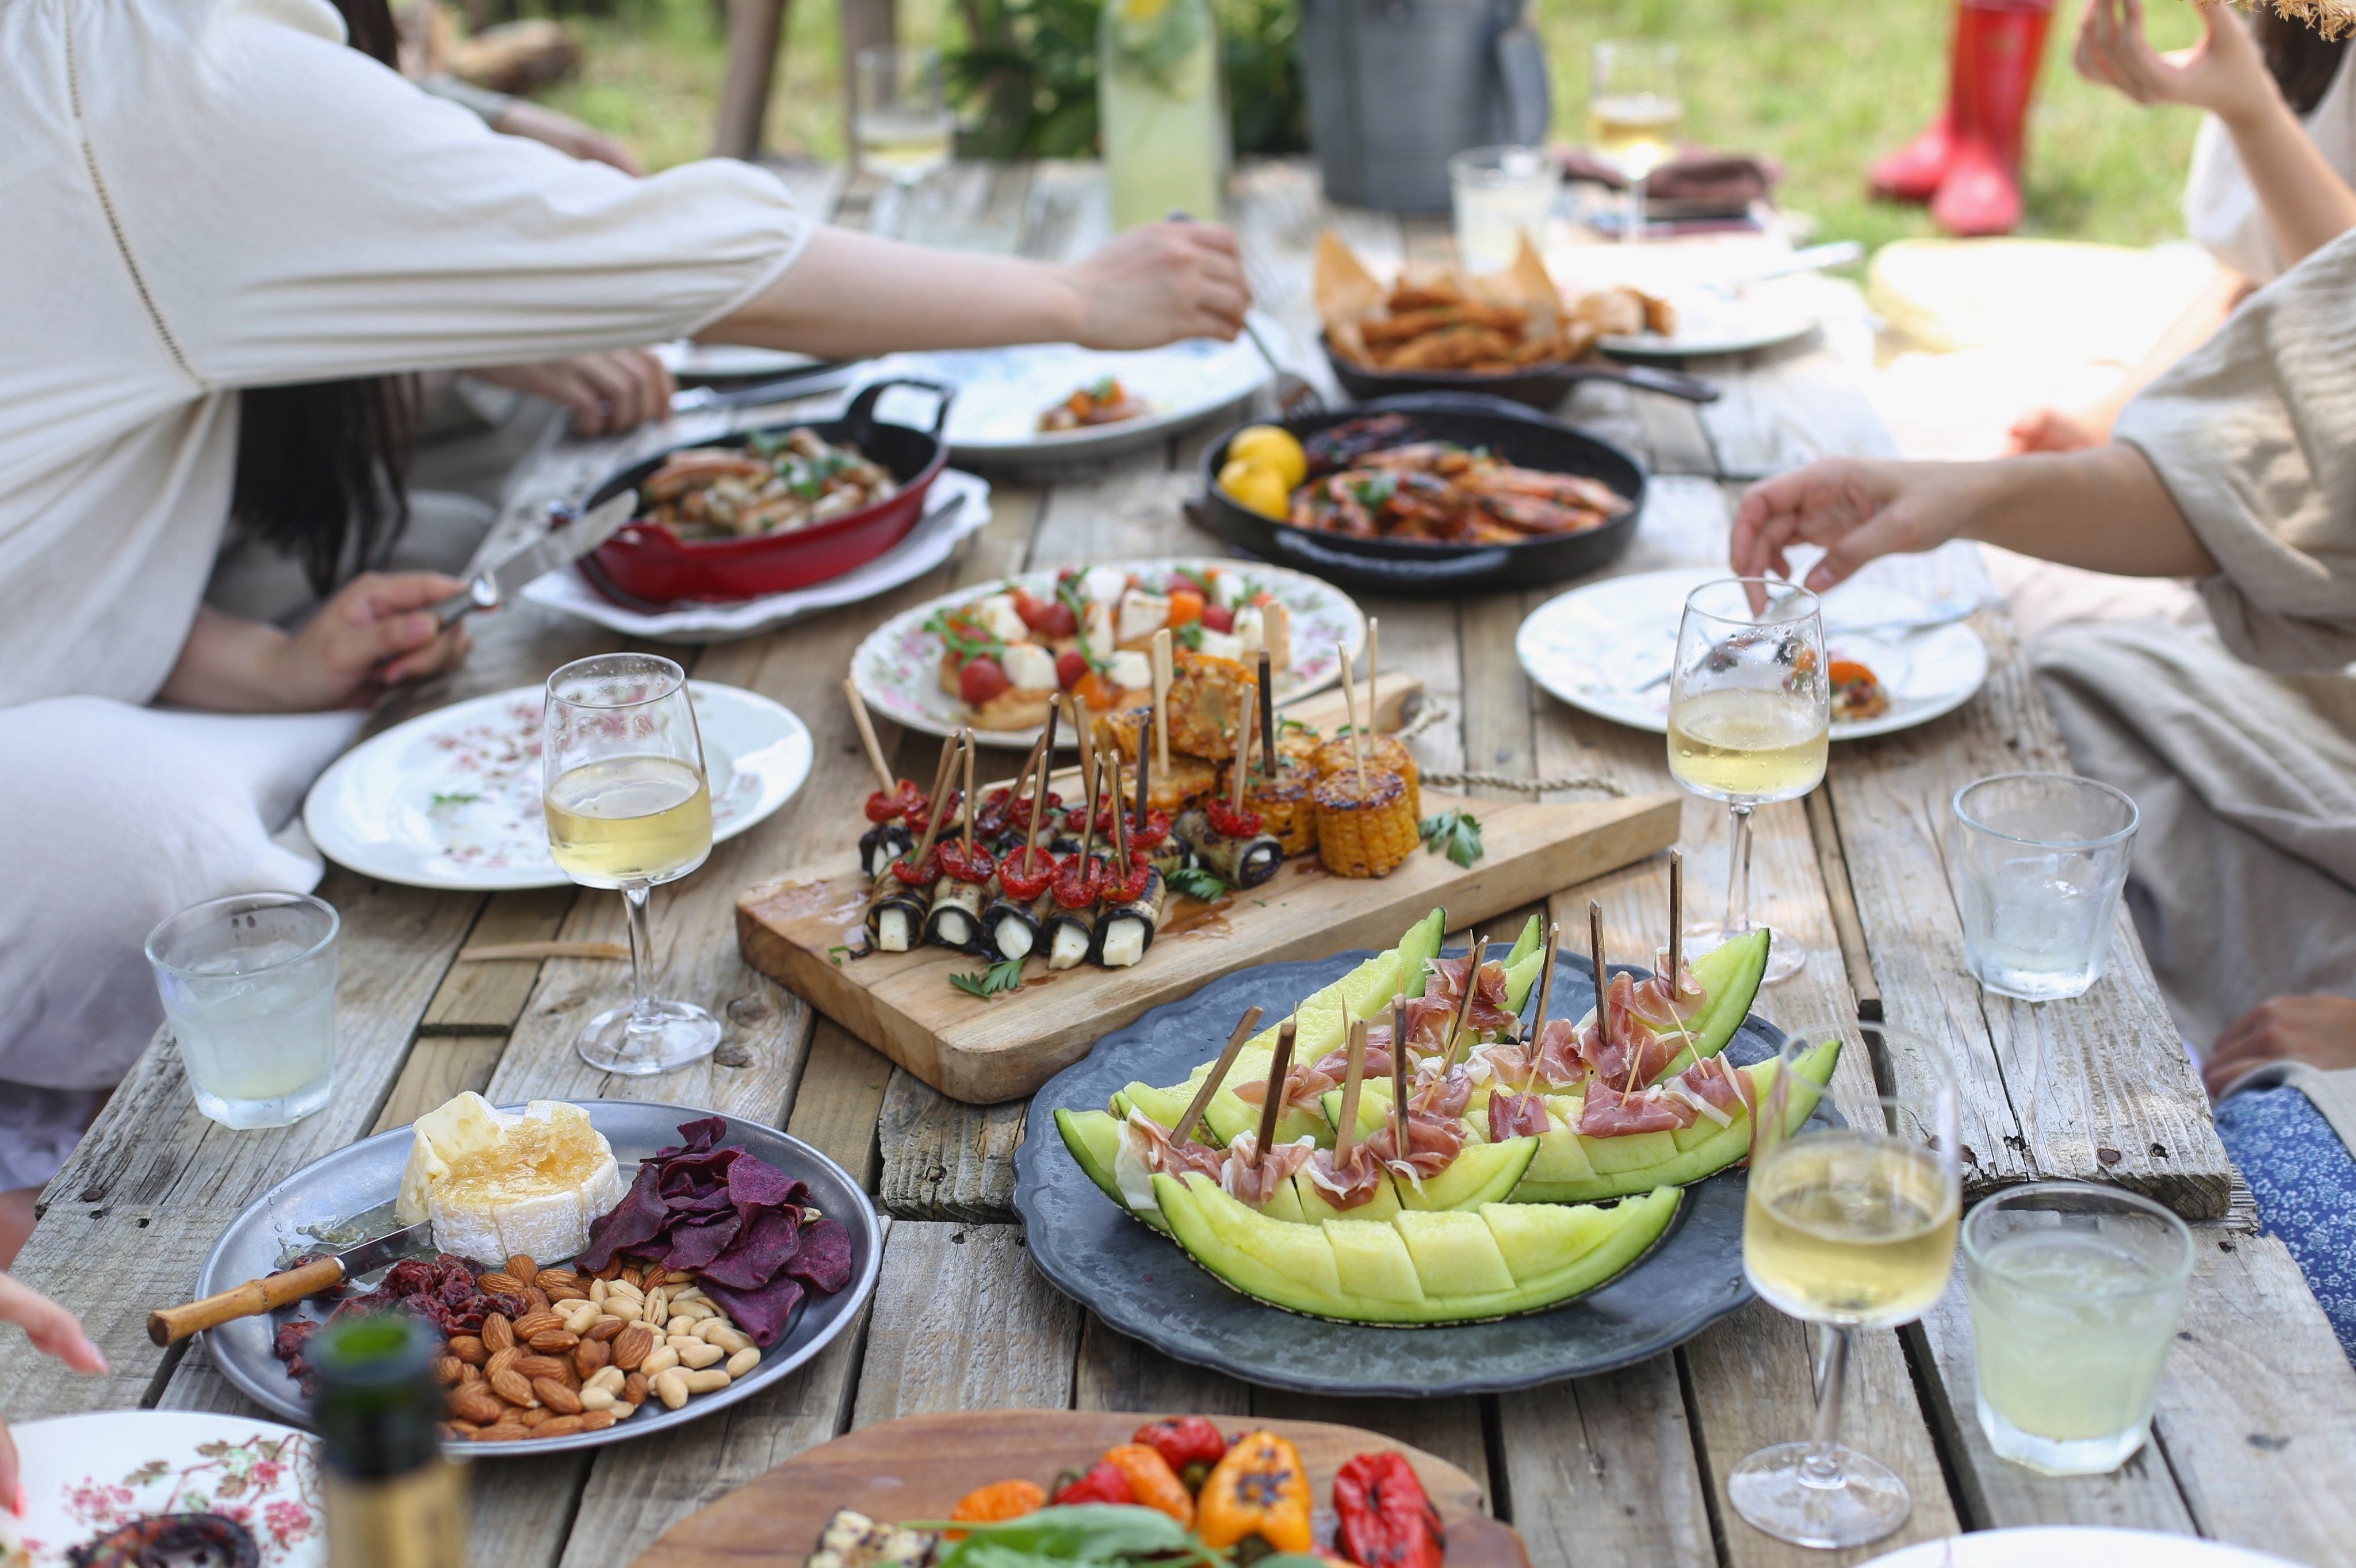 Study shows Mediterranean diet associated with better cognitive function in older adults